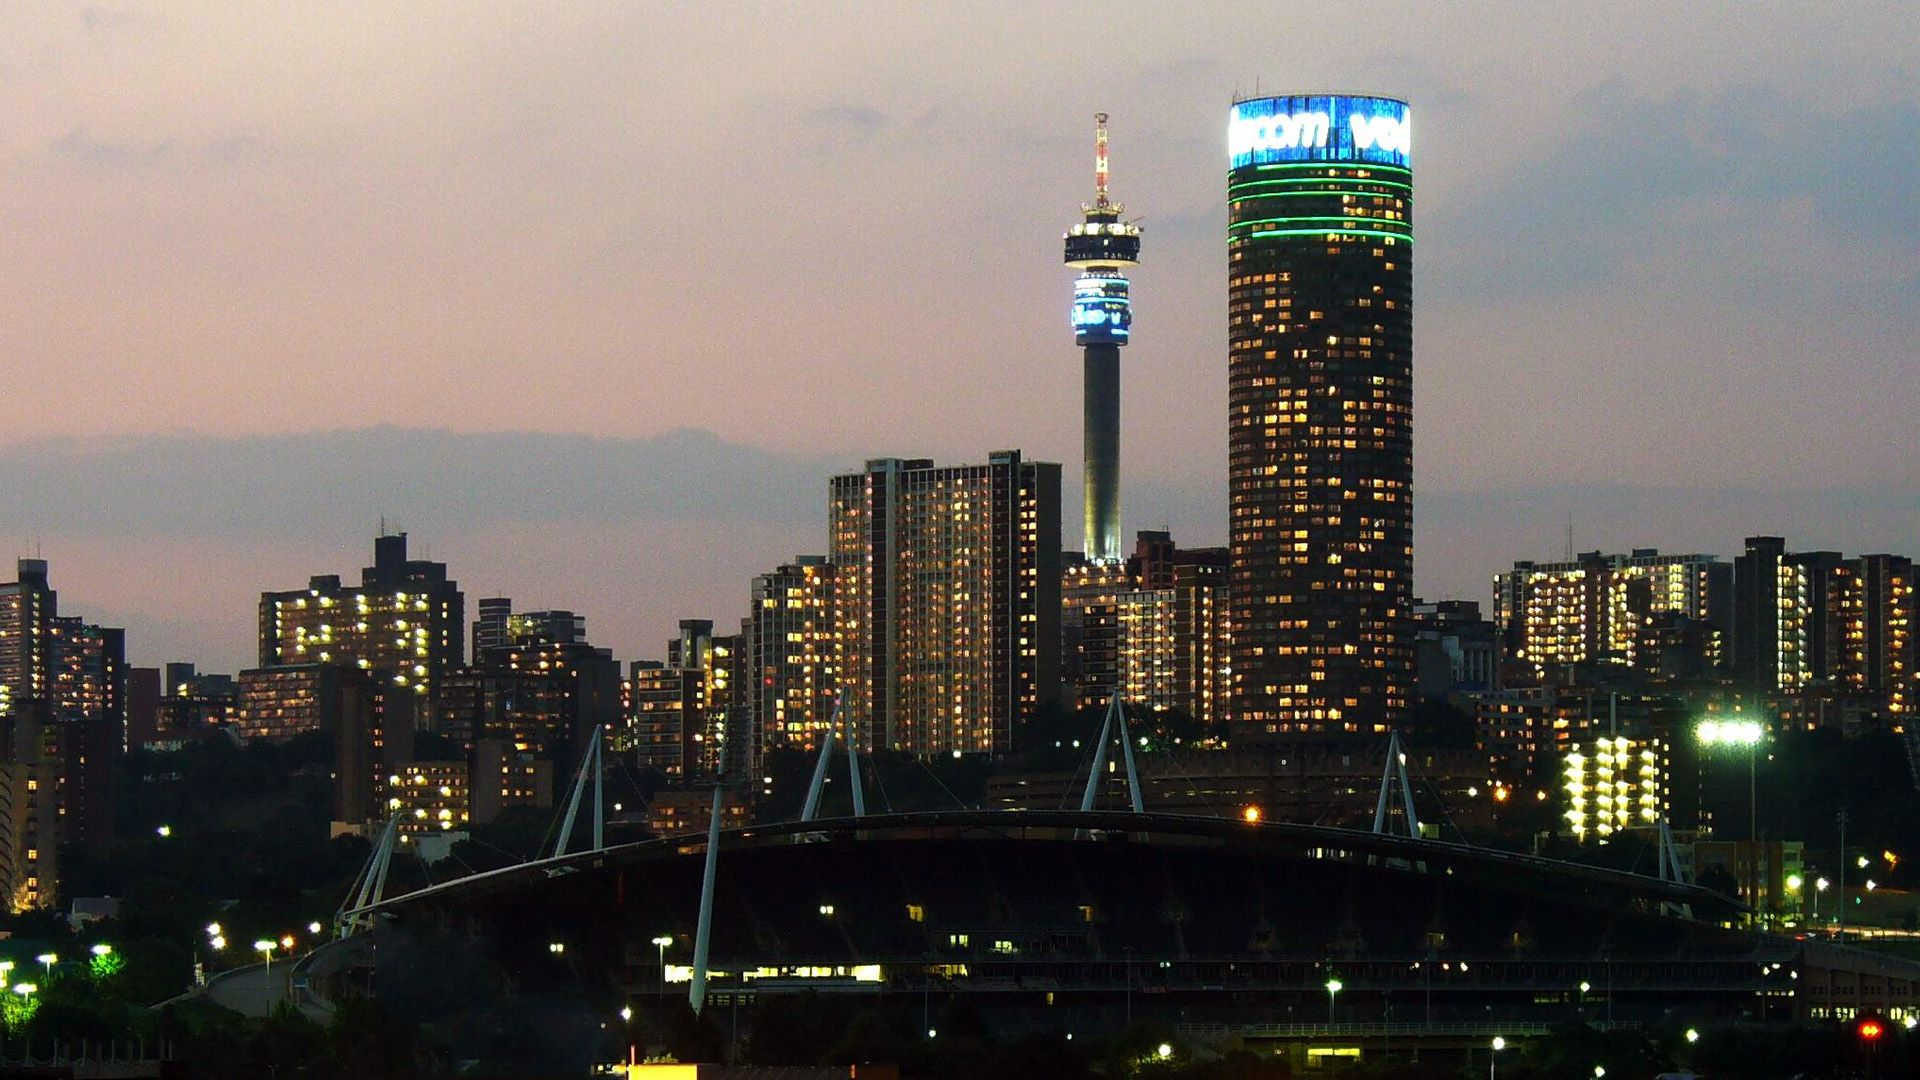 For Your Desktop Johannesburg Wallpapers 45 Top Quality - Johannesburg South Africa City , HD Wallpaper & Backgrounds